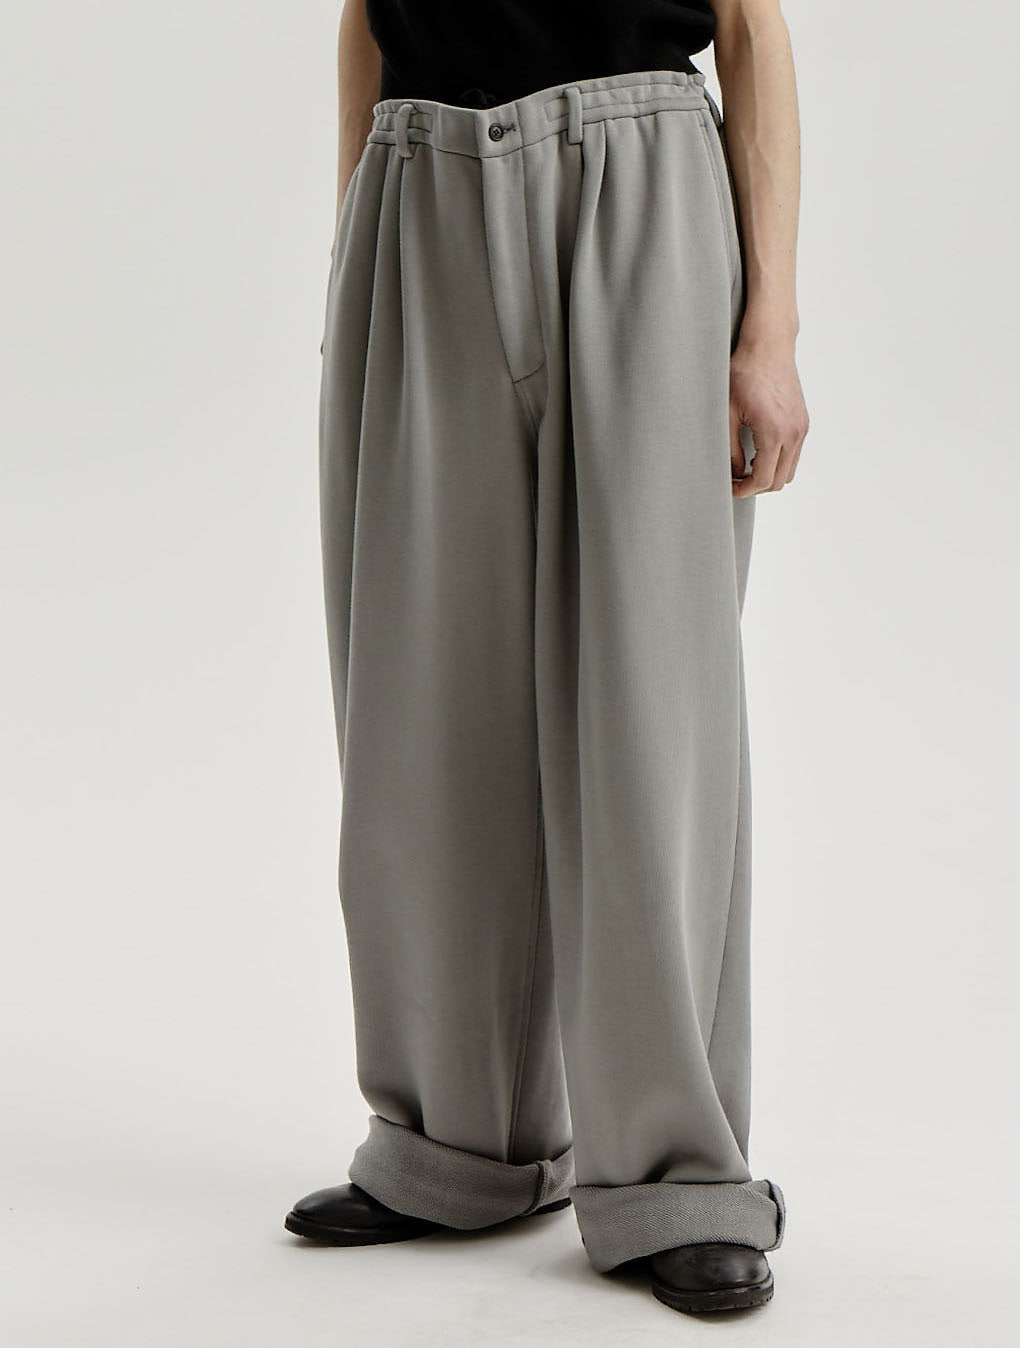 Steel Grey Jersey Comfy Wide Trousers